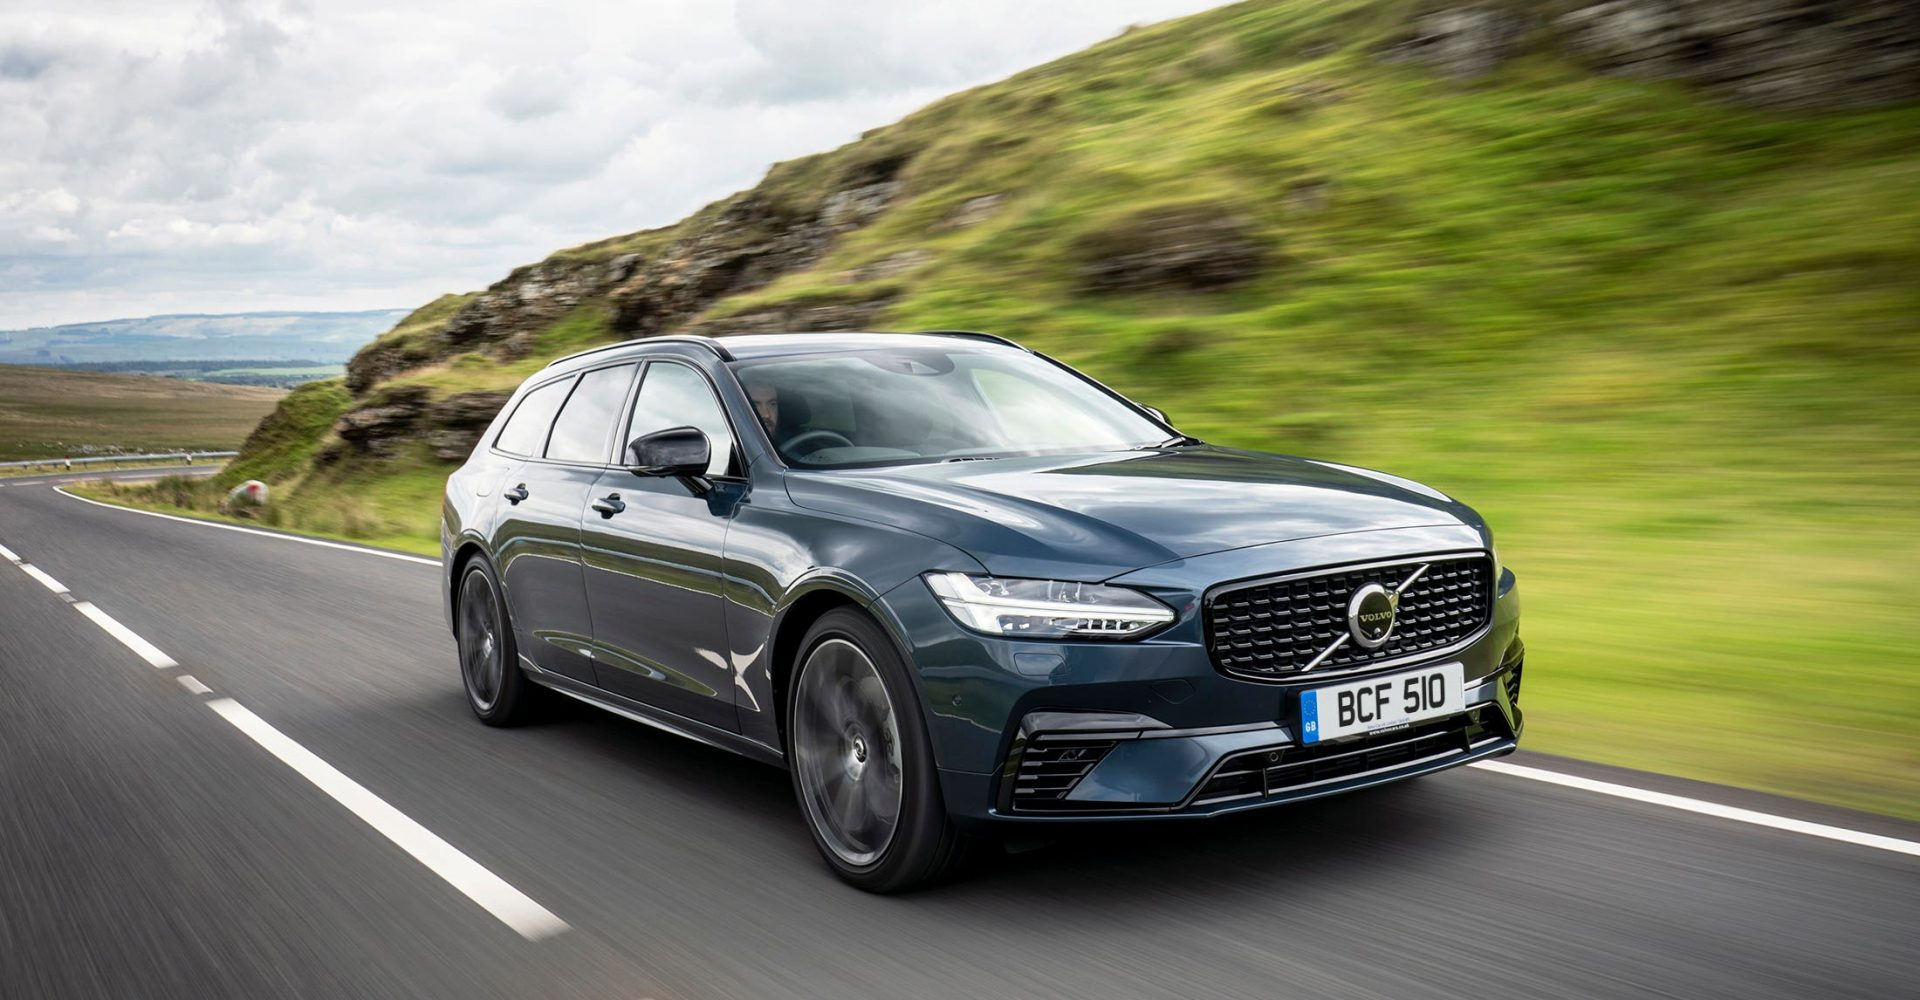 UK Drive: The Volvo V90 Recharge T6 is a supreme plug-in hybrid estate car